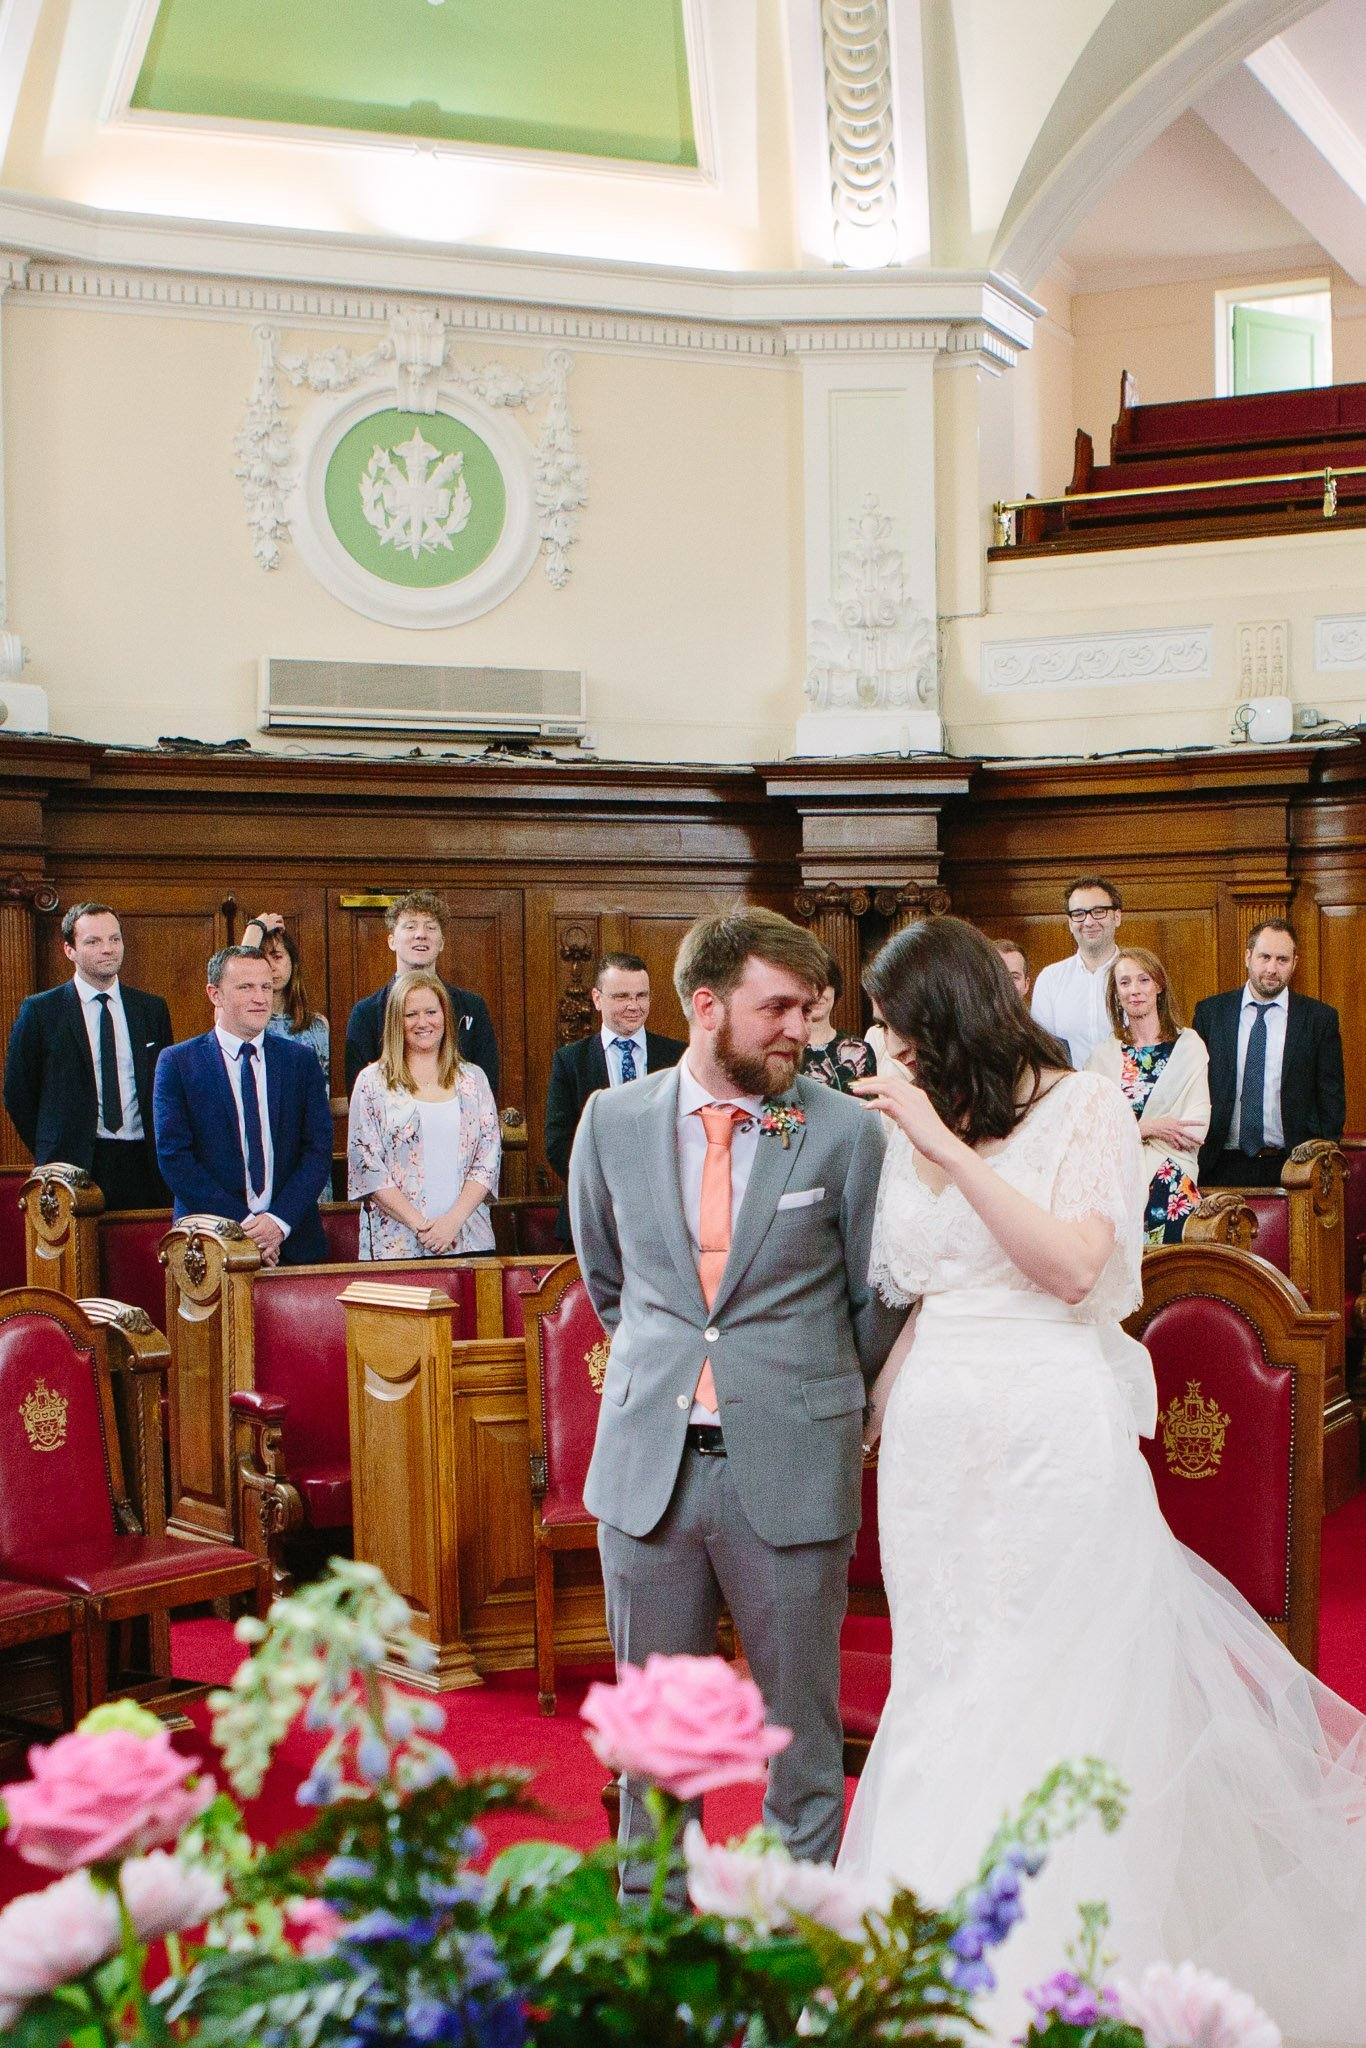 Emotional bride & groom at ceremony at Islington Town Hall